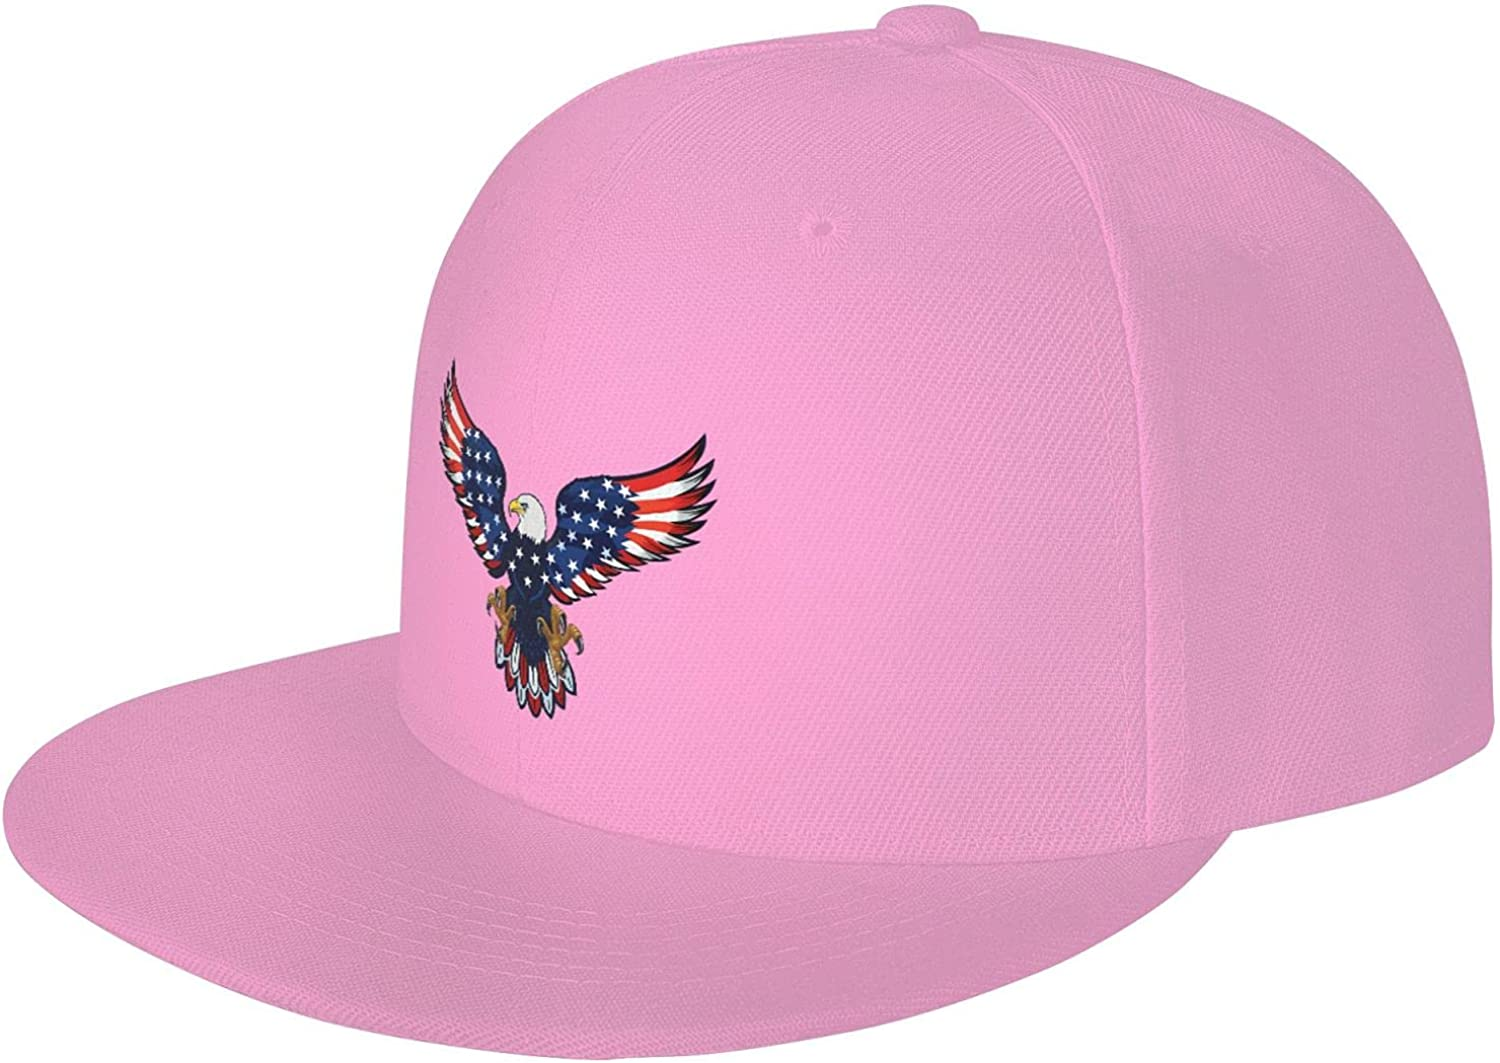 Eagle with American Men's Clothing New arrival Baseball Import Women's Cap